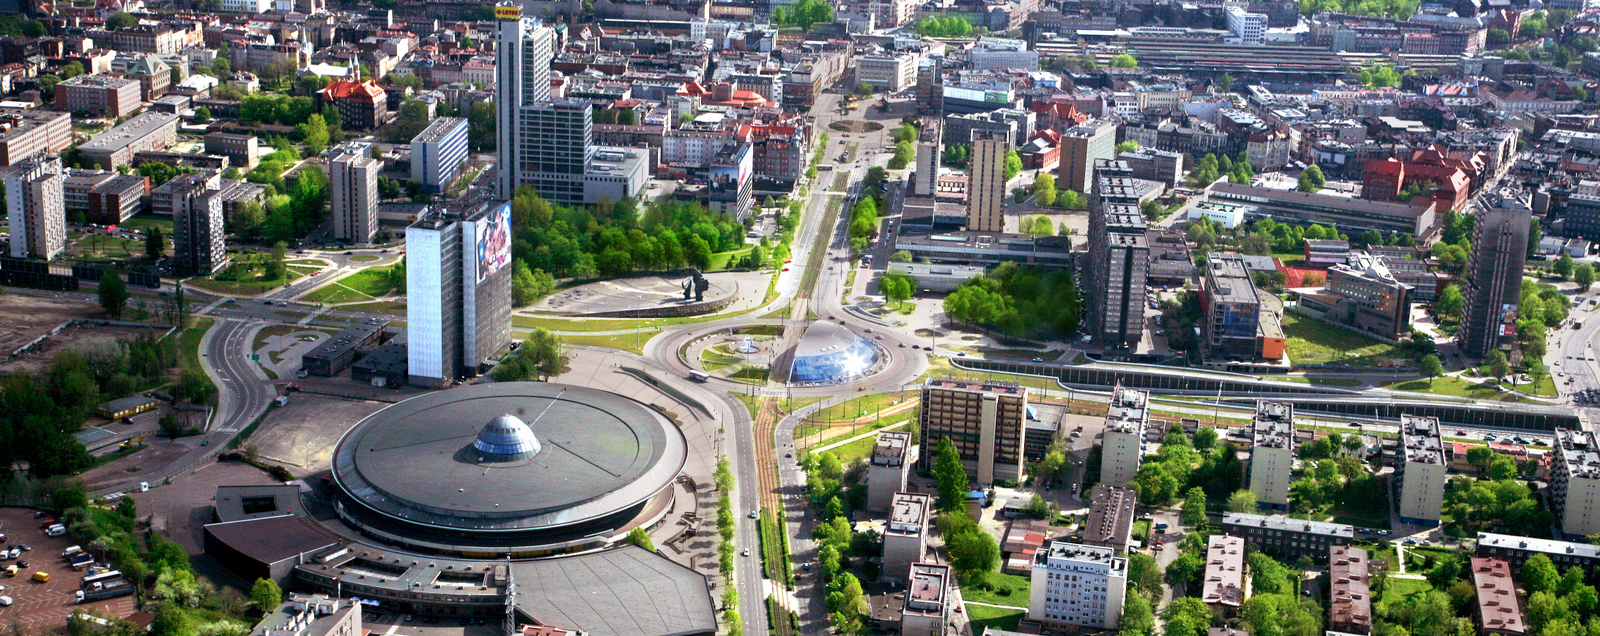 msales to open offices in Poland